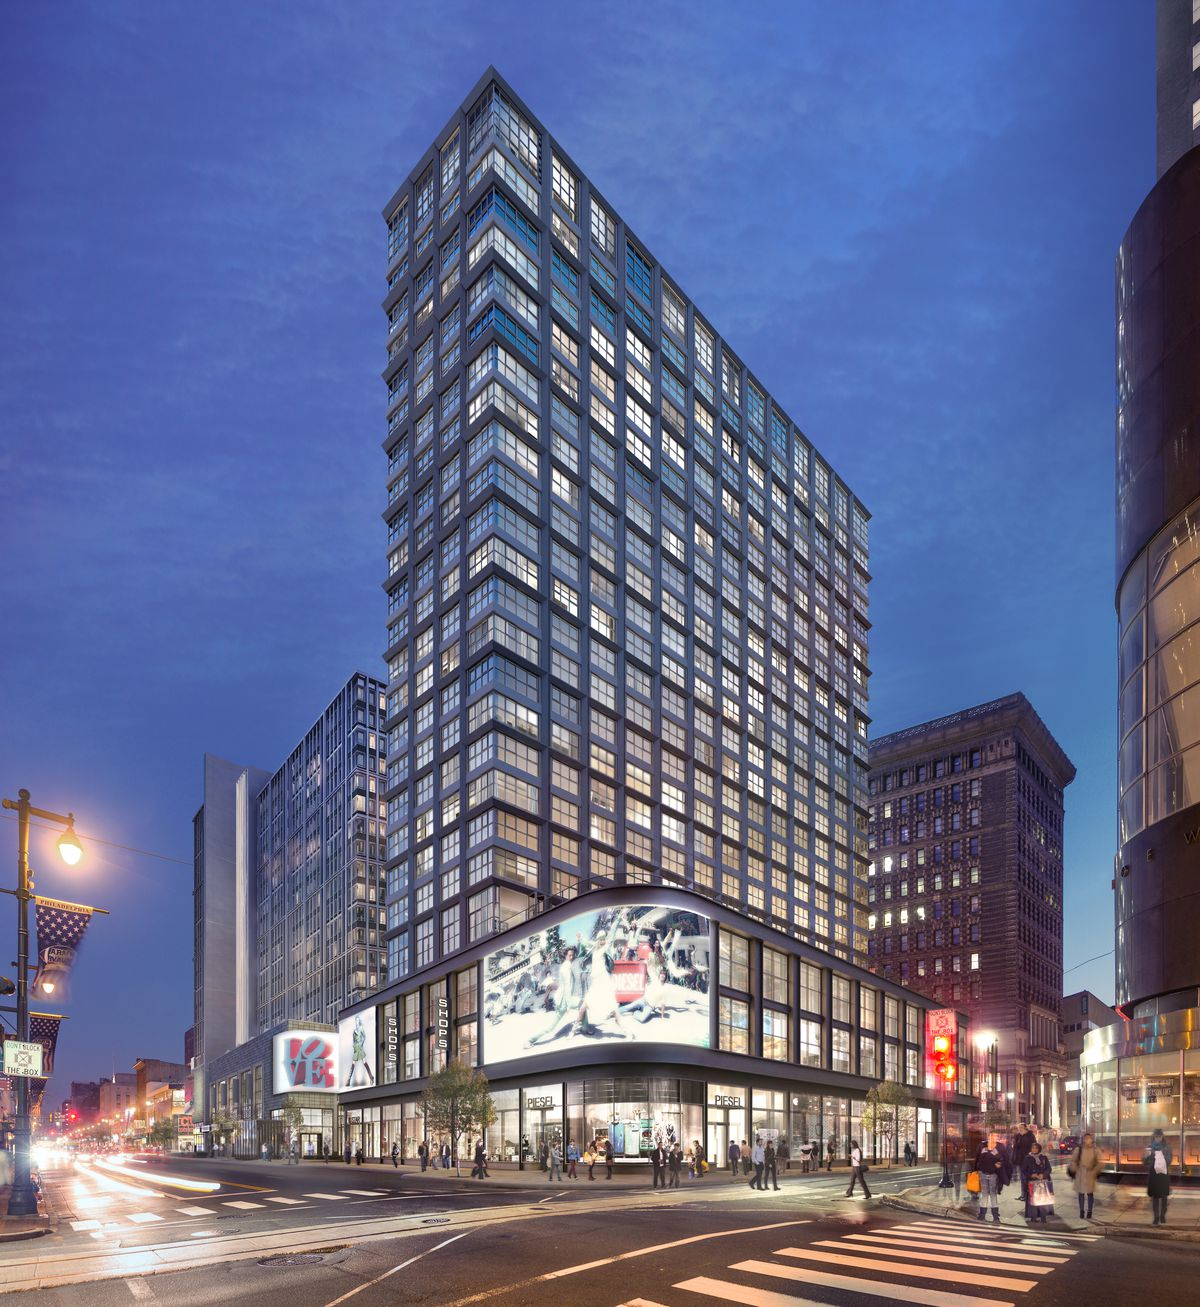 The exterior of 1199 Ludlow Street in Philadelphia. The facade is glass.